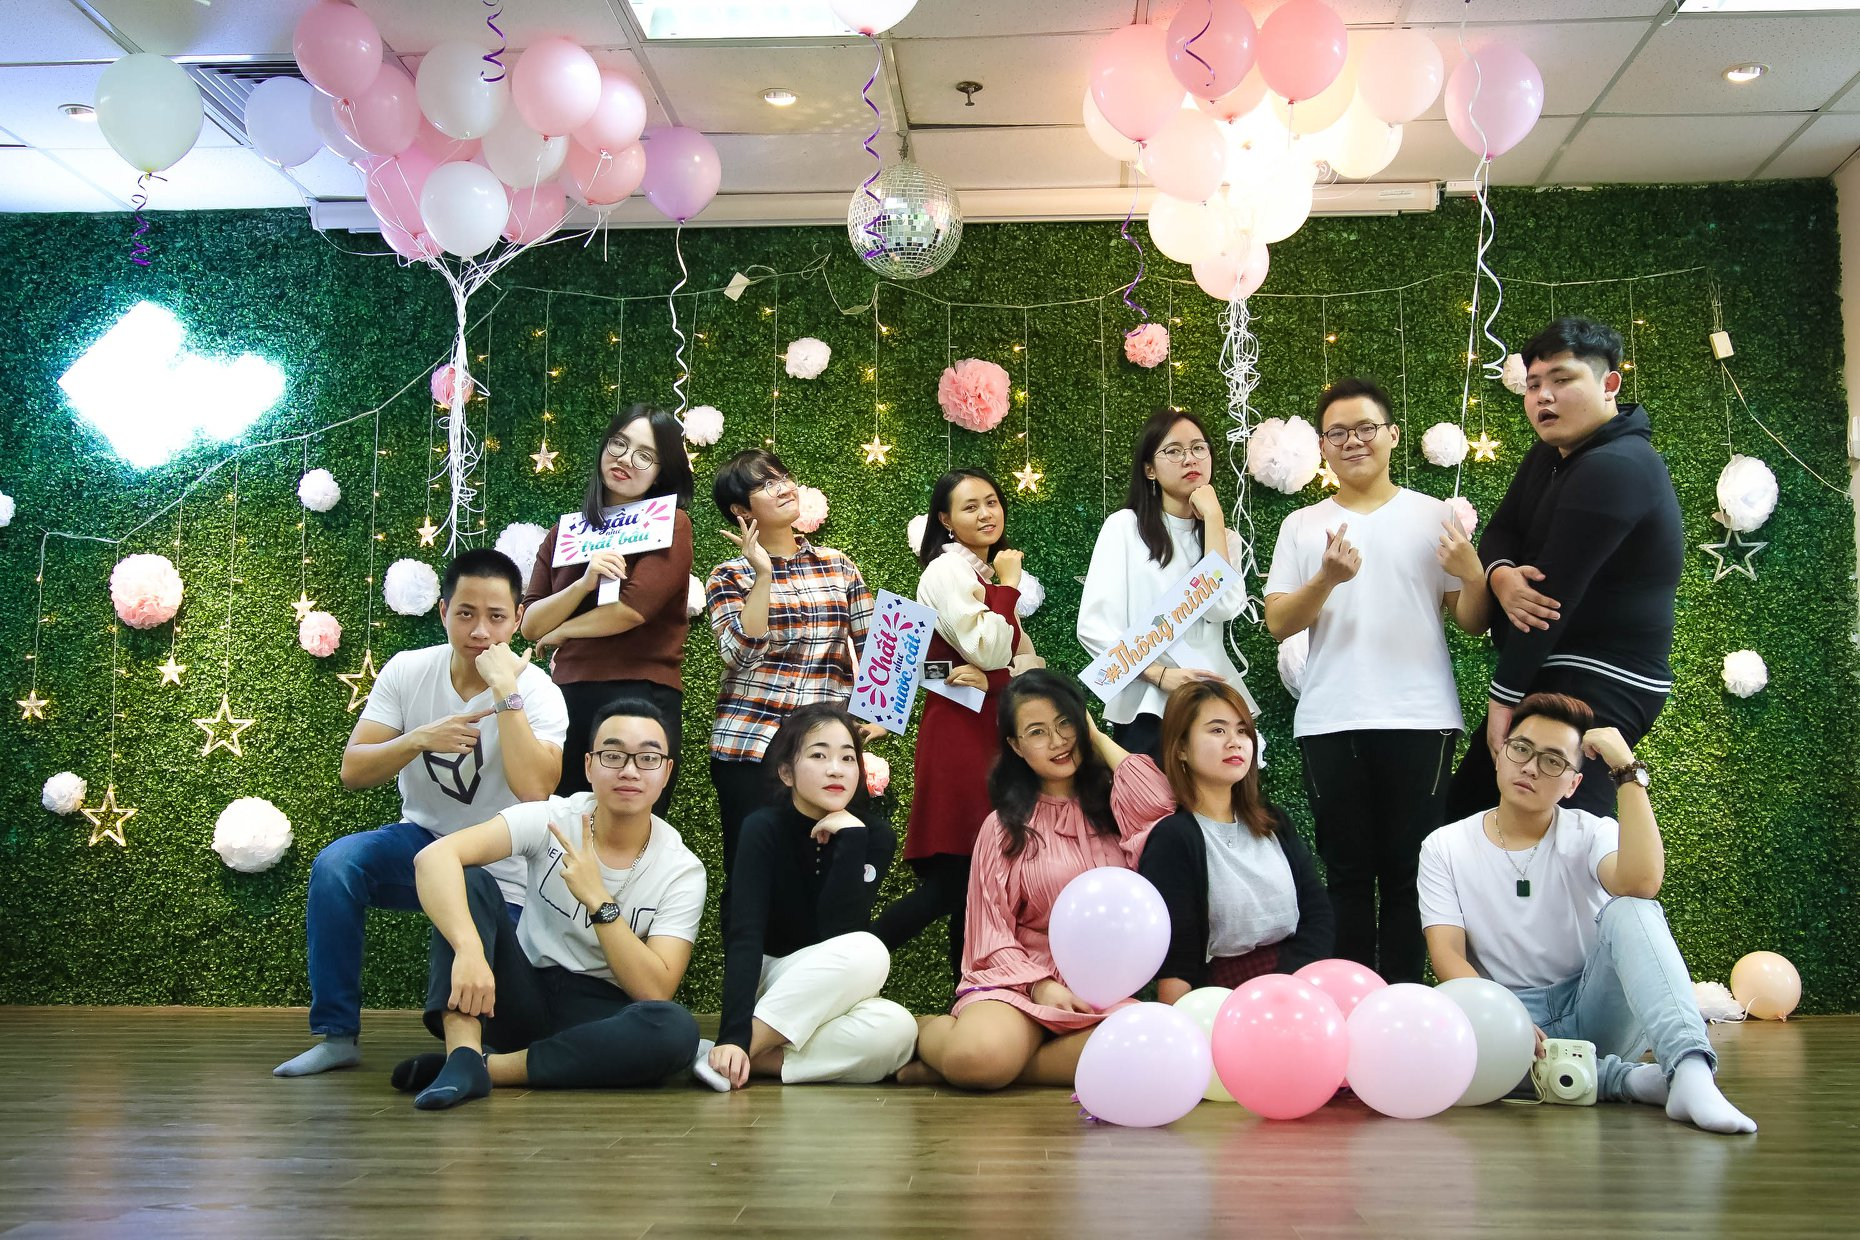 [LIFE@CO-WELL] HAPPY WOMEN'S DAY (8-3): BE A LADY